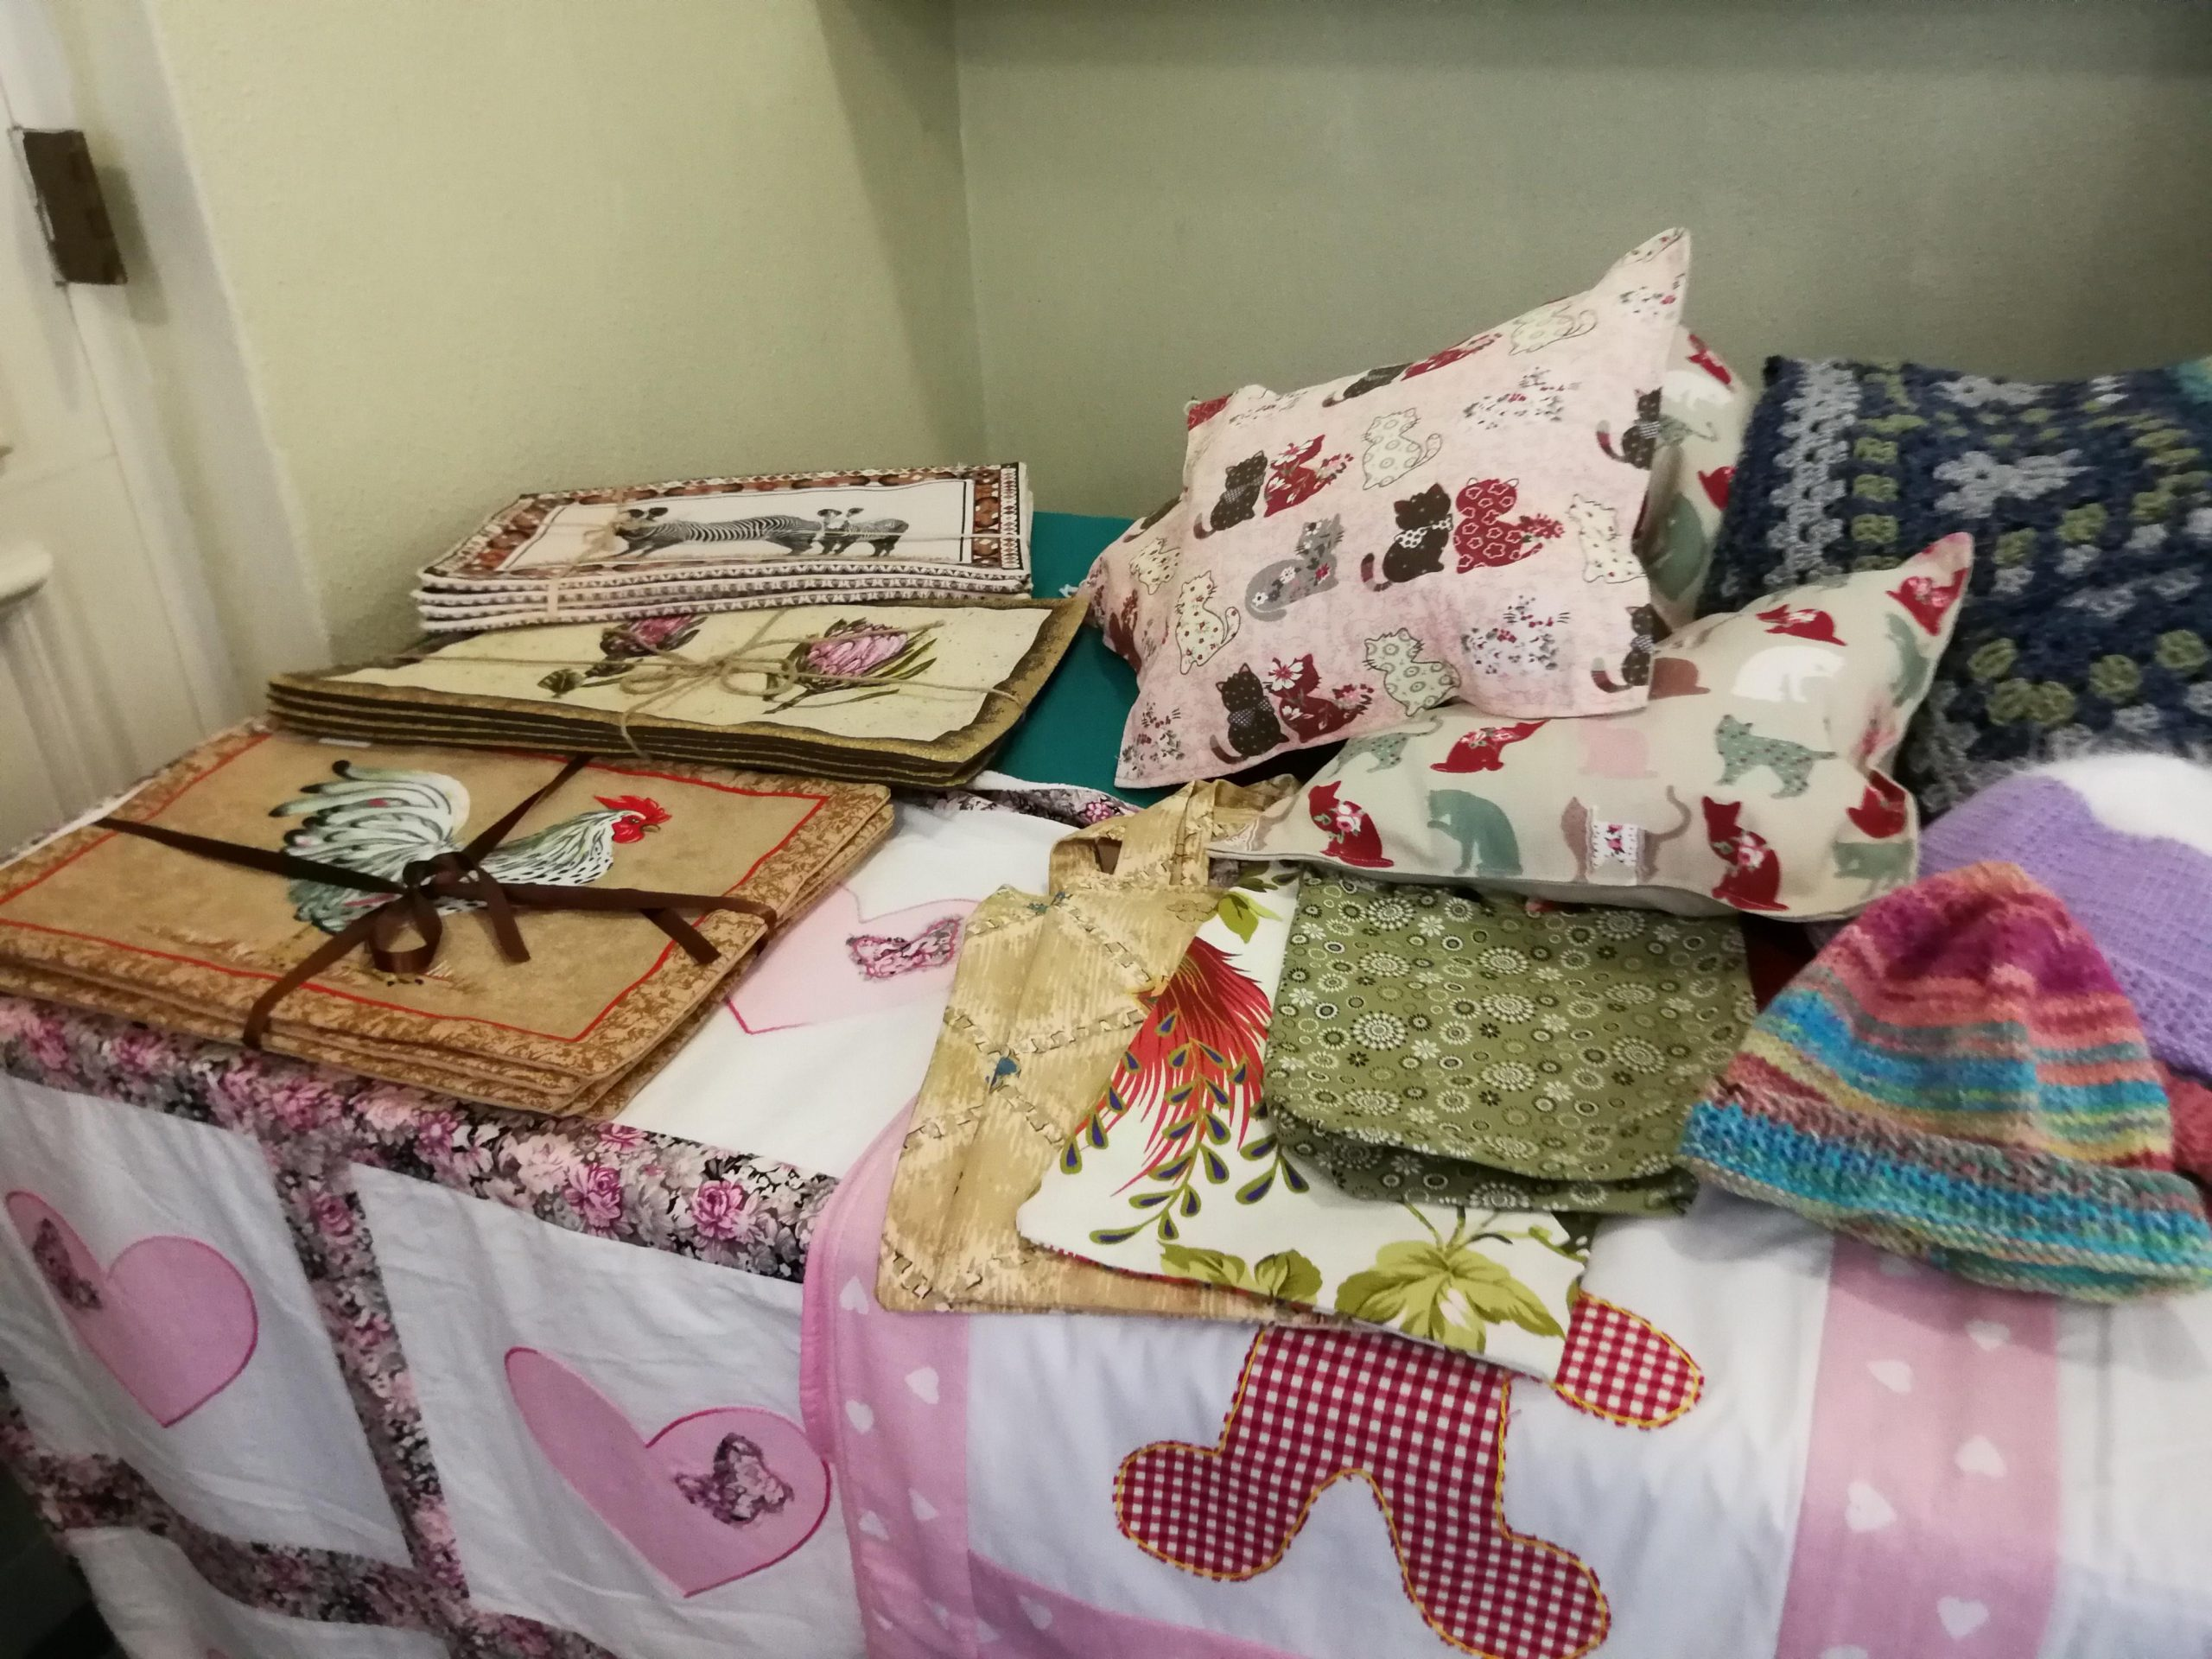 Clothes, cushions, blankets